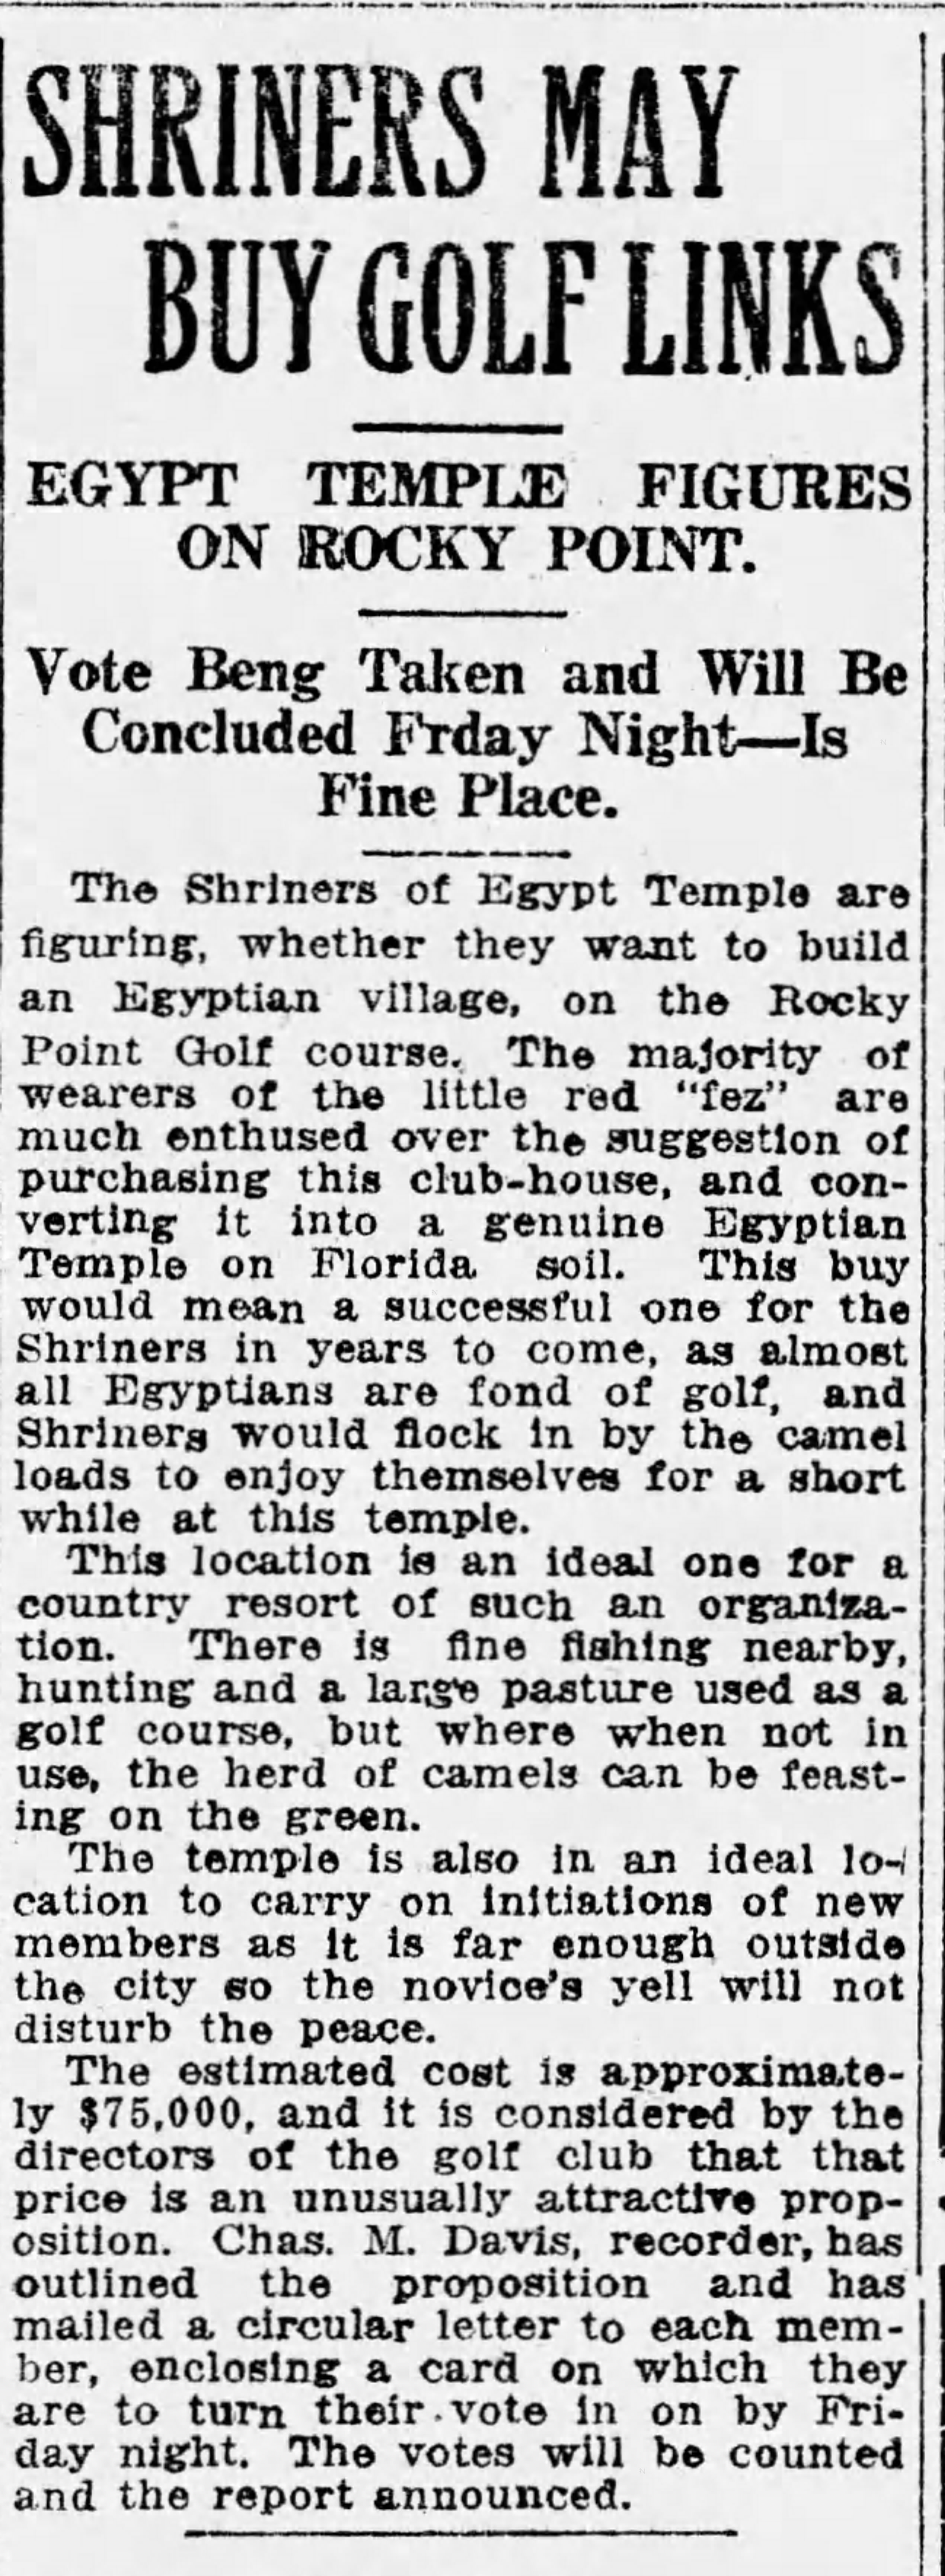 Shriners May Buy Golf Links - May 8, 1918 Tampa Times